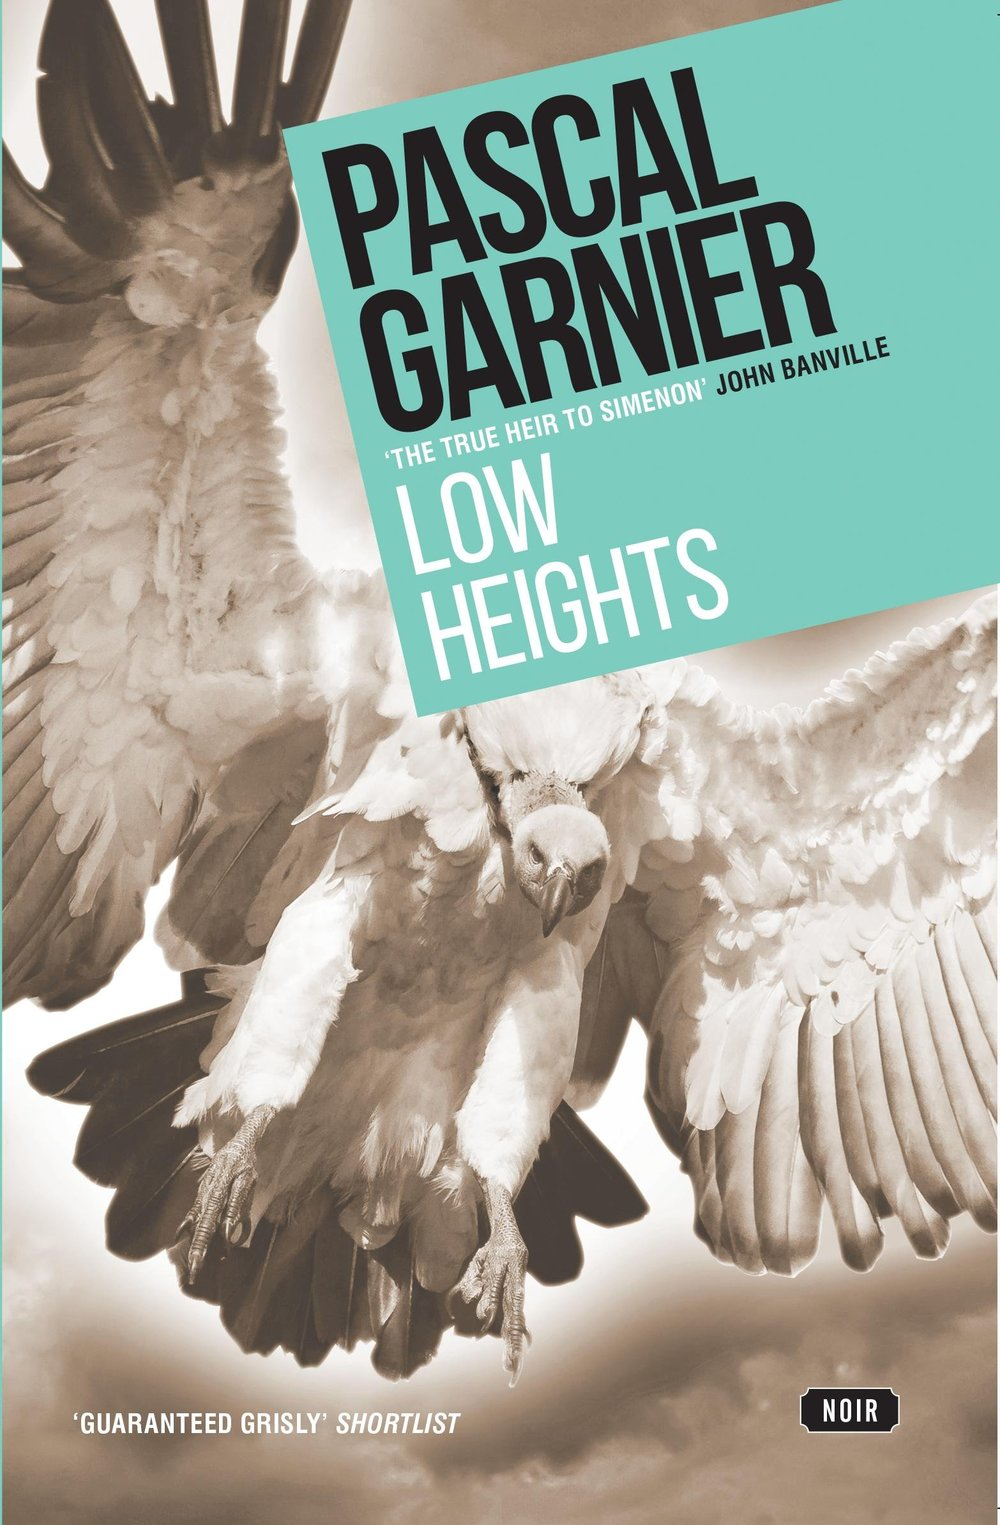 Low Heights - Pascal Garnier.jpg